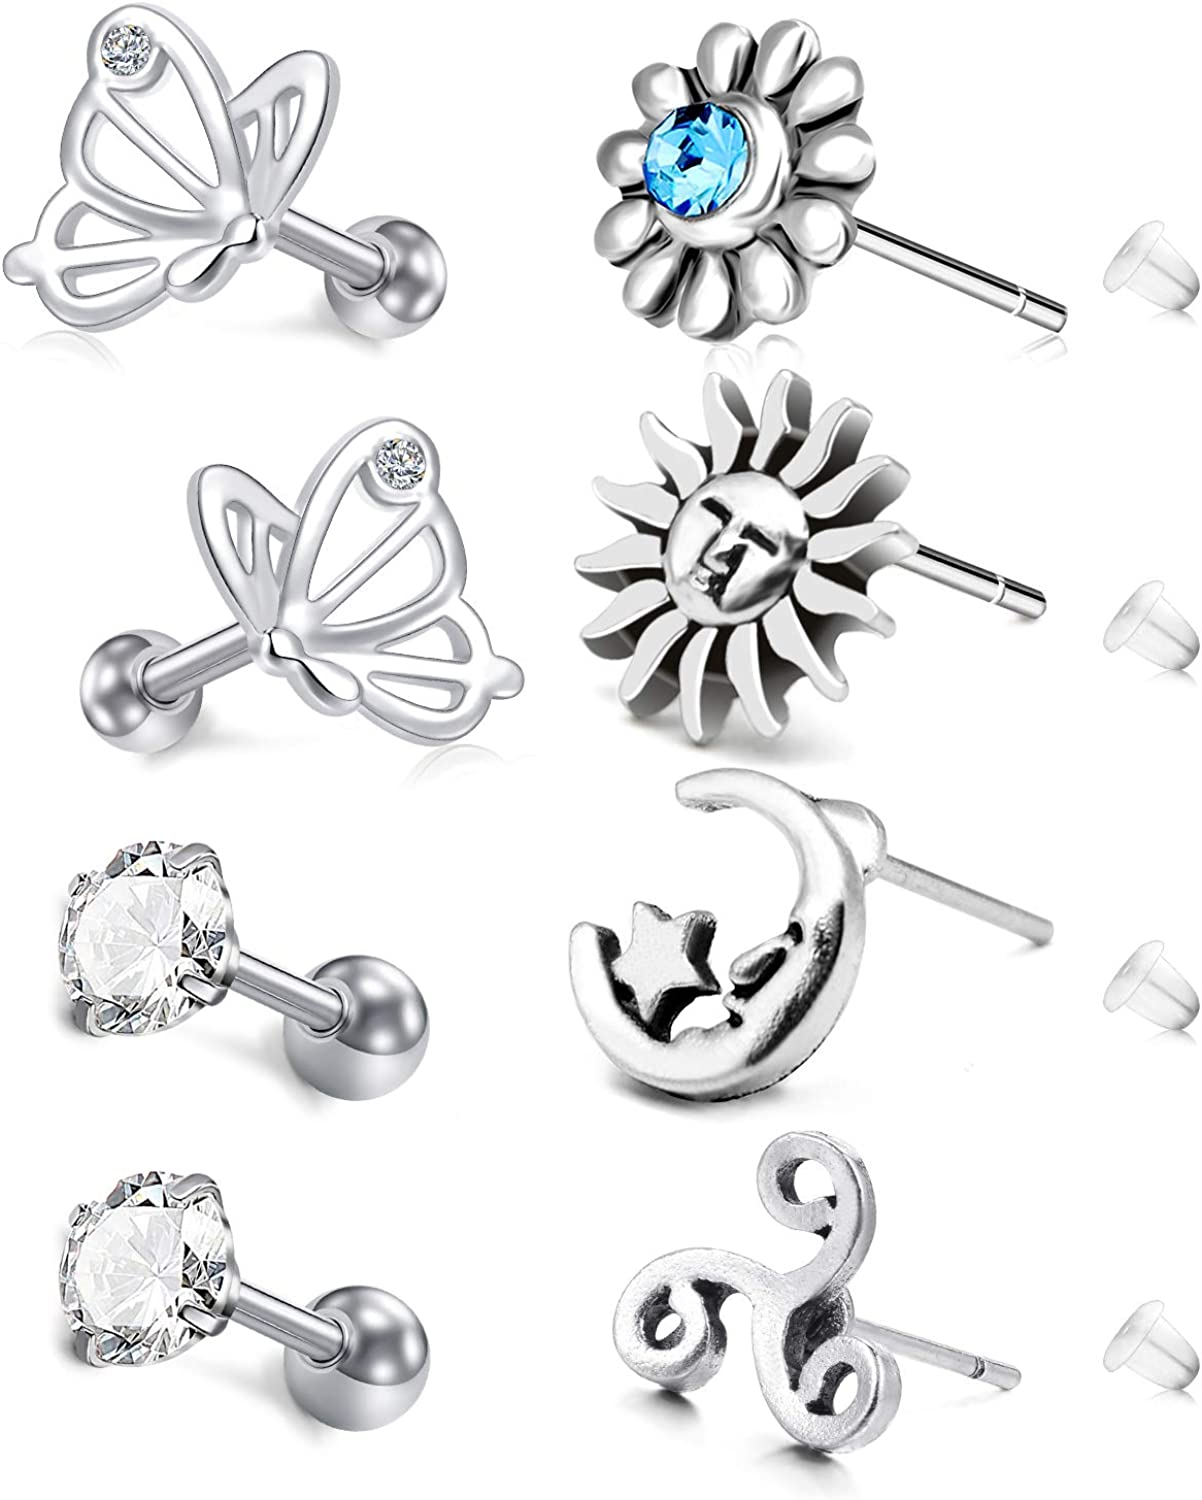 2Pcs Stainless Steel Barbell Ear Studs With Cz Hoop Cartilage Earrings Jewelry